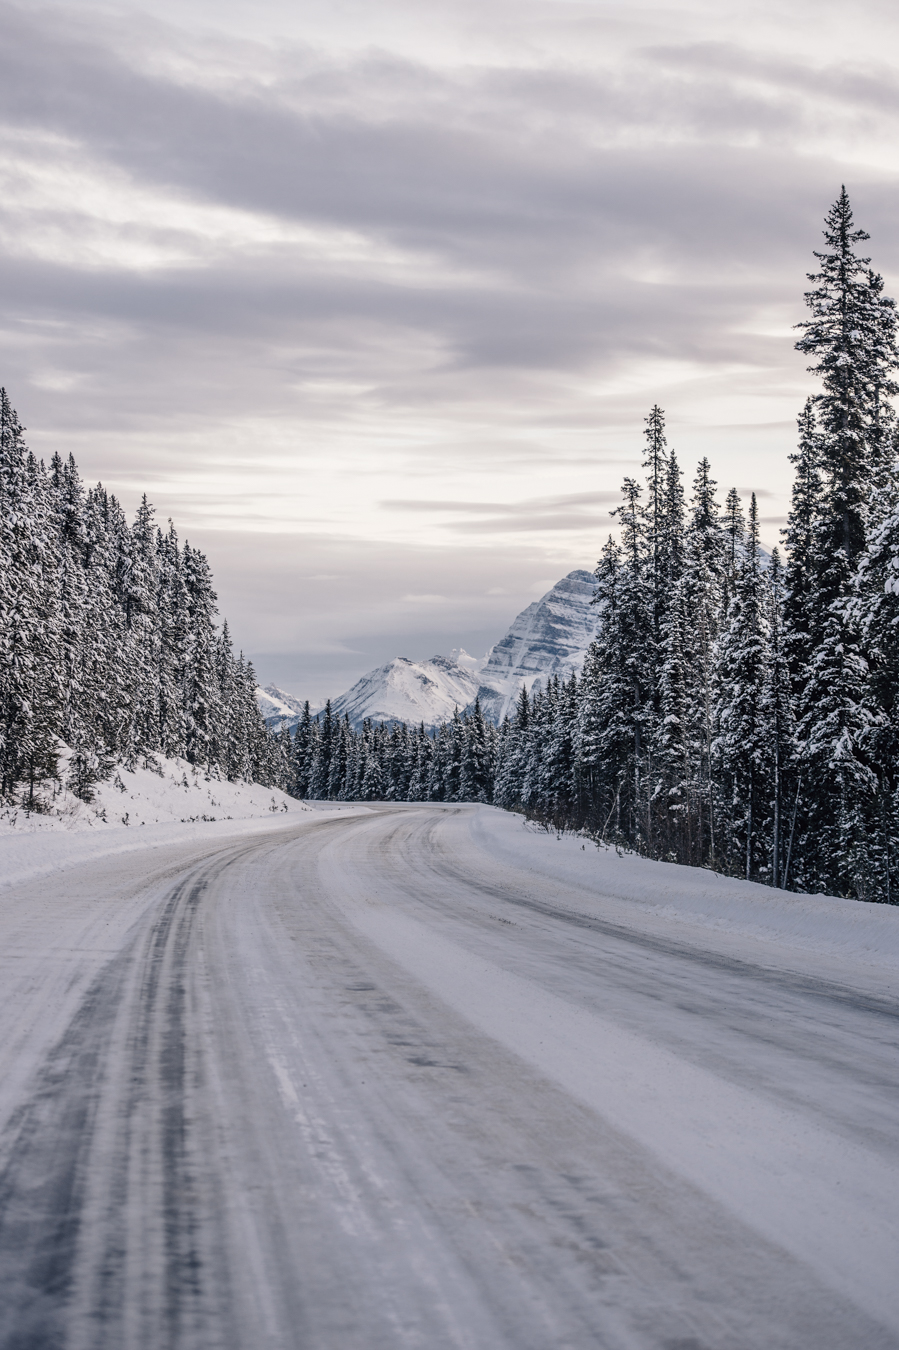 icefields-parkway-christian-frumolt-fotografie_web_small-178